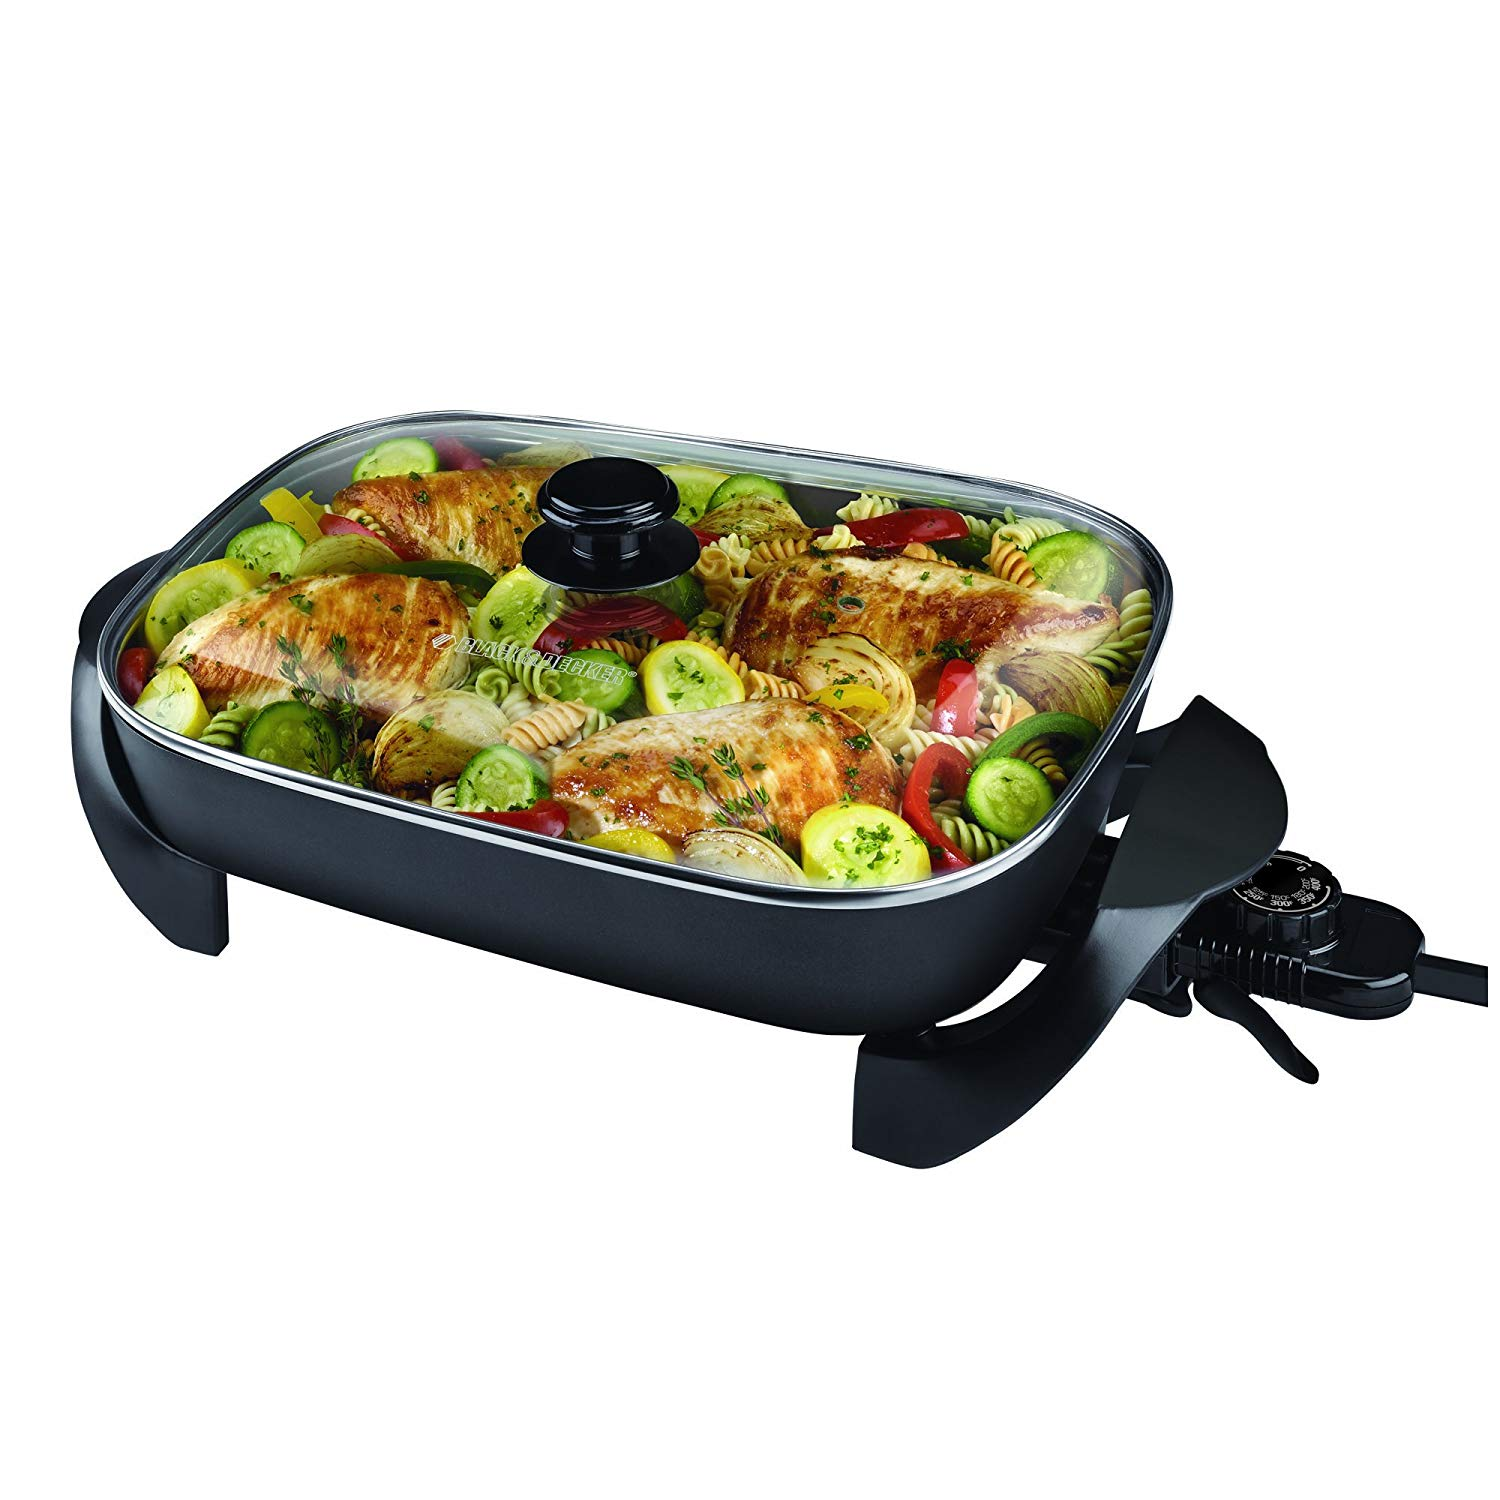 10 Best Electric Skillets of 2019 | Reviews 3